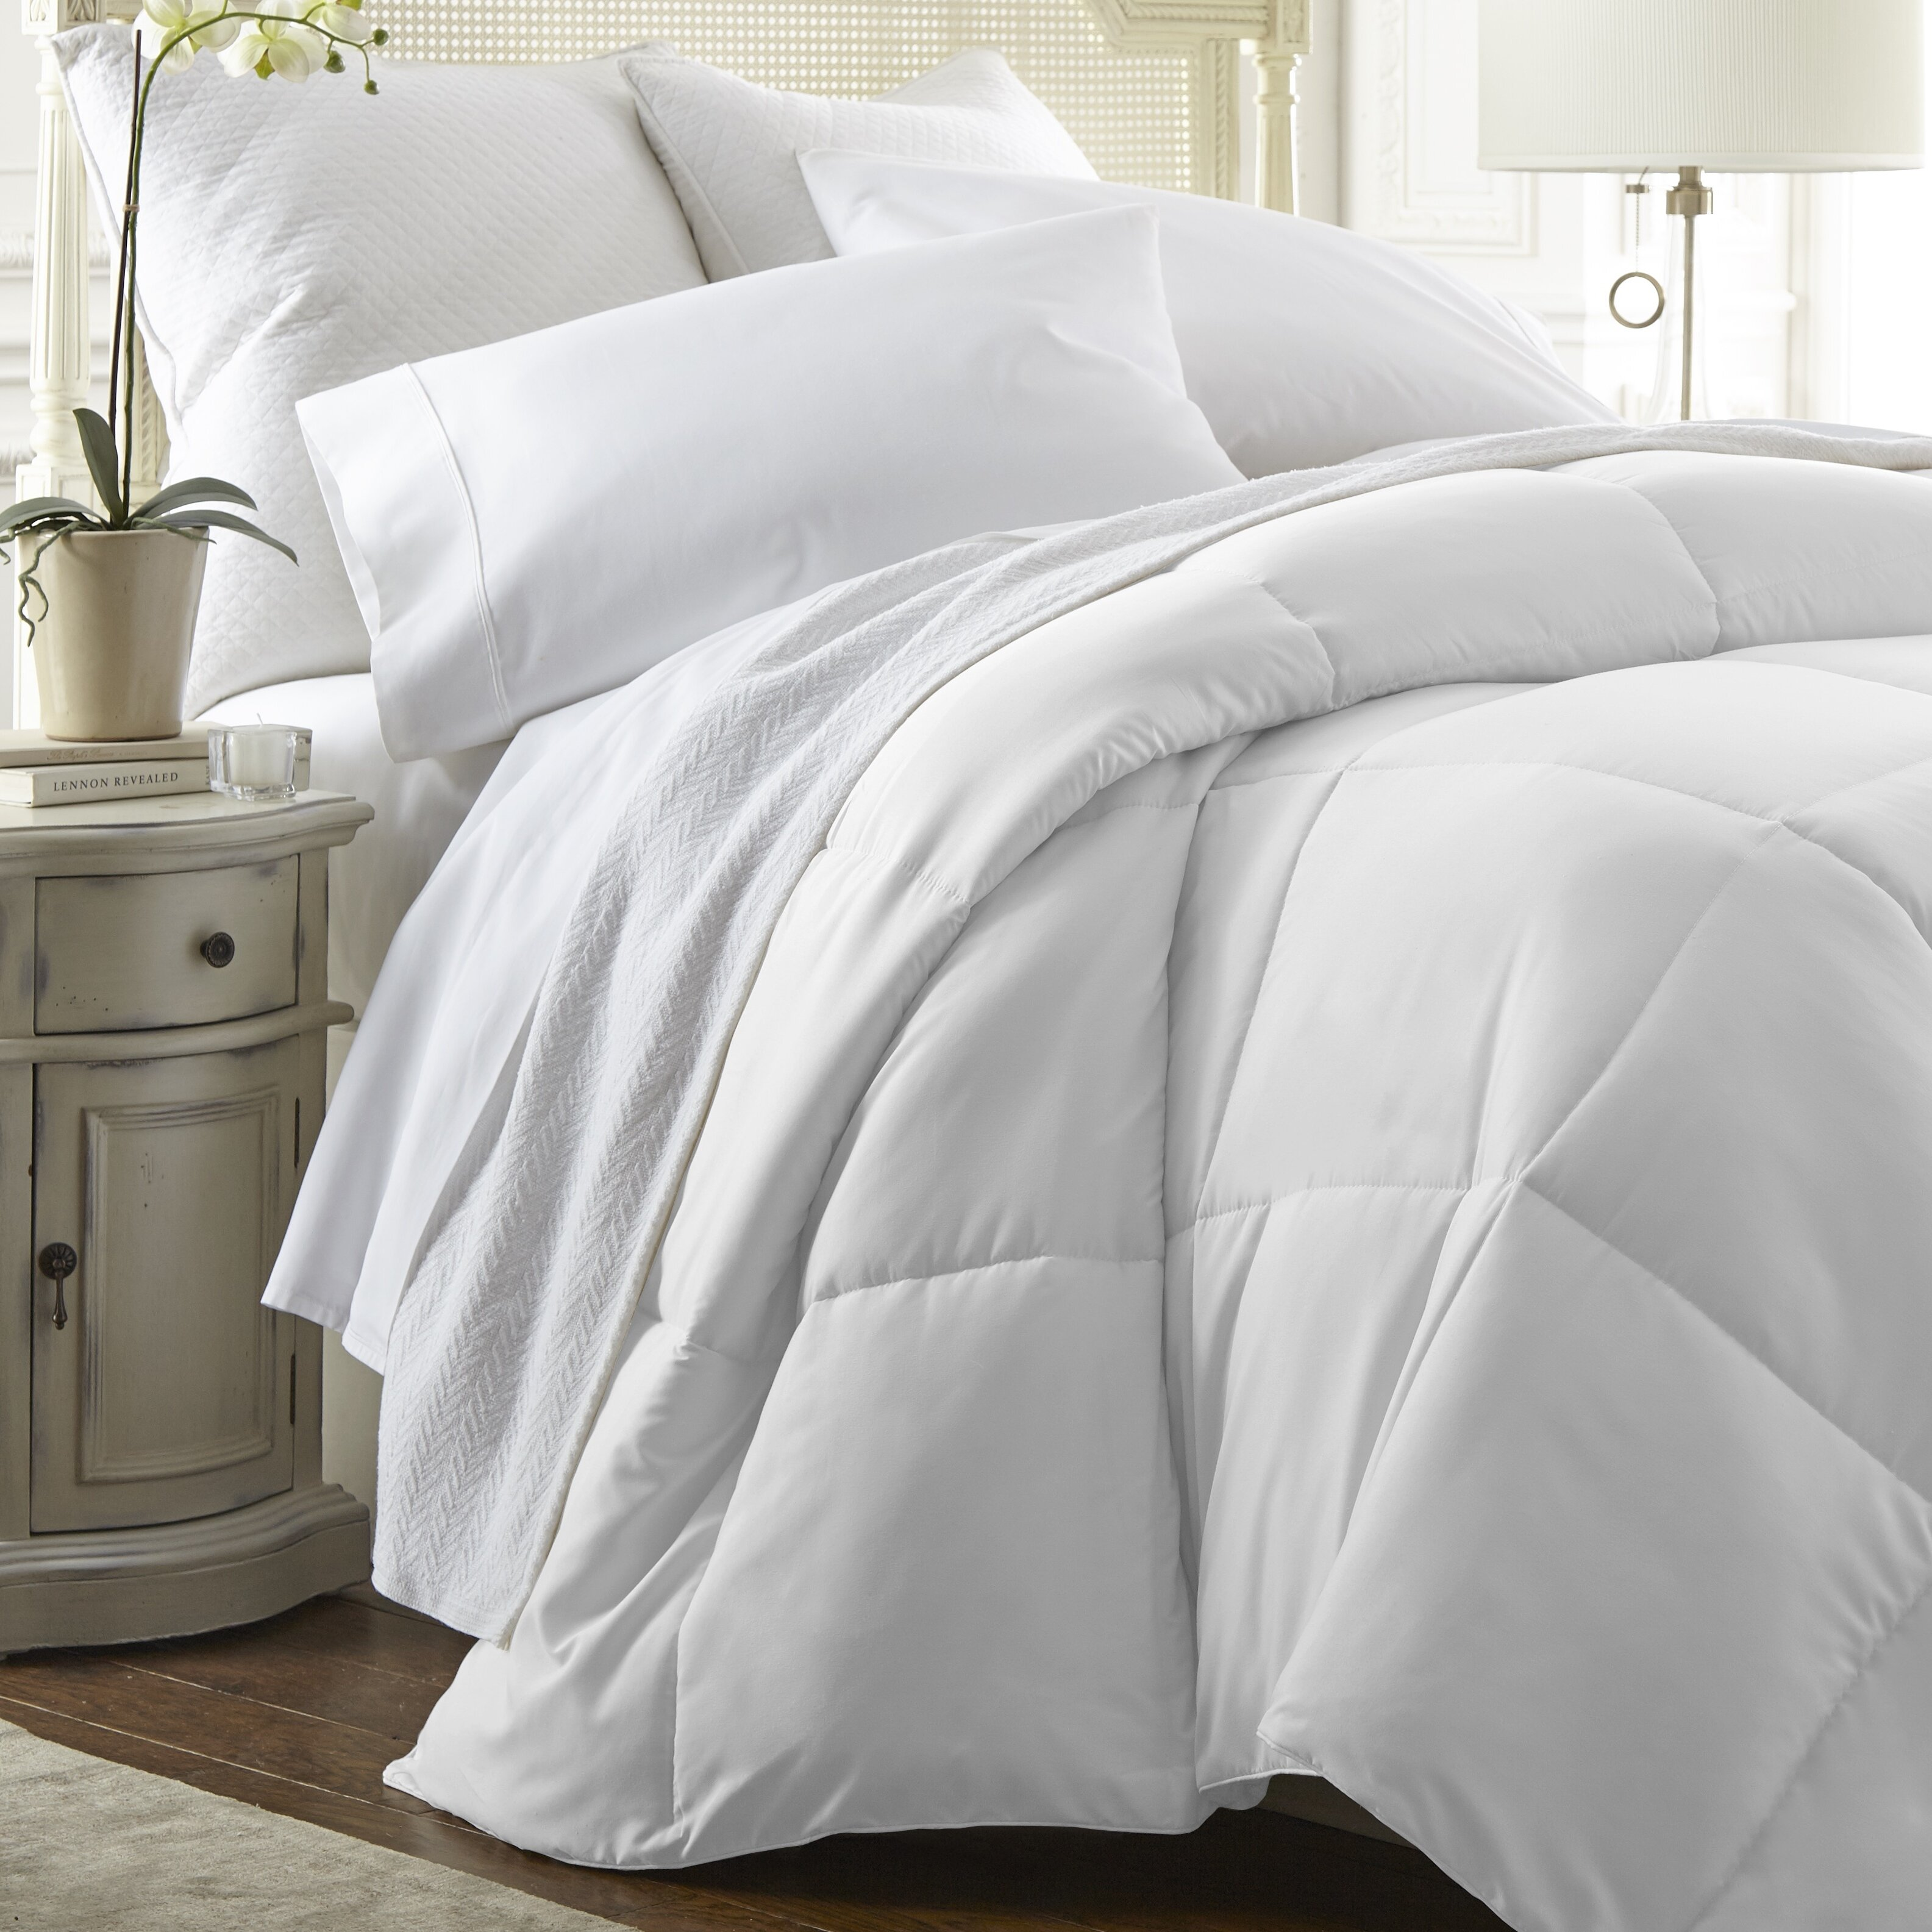 DOUBLE BED SIZE QUILT 90/% MUSKOVY DUCK DOWN 7 BLANKET WARMTH CHANNEL STYLE DOONA